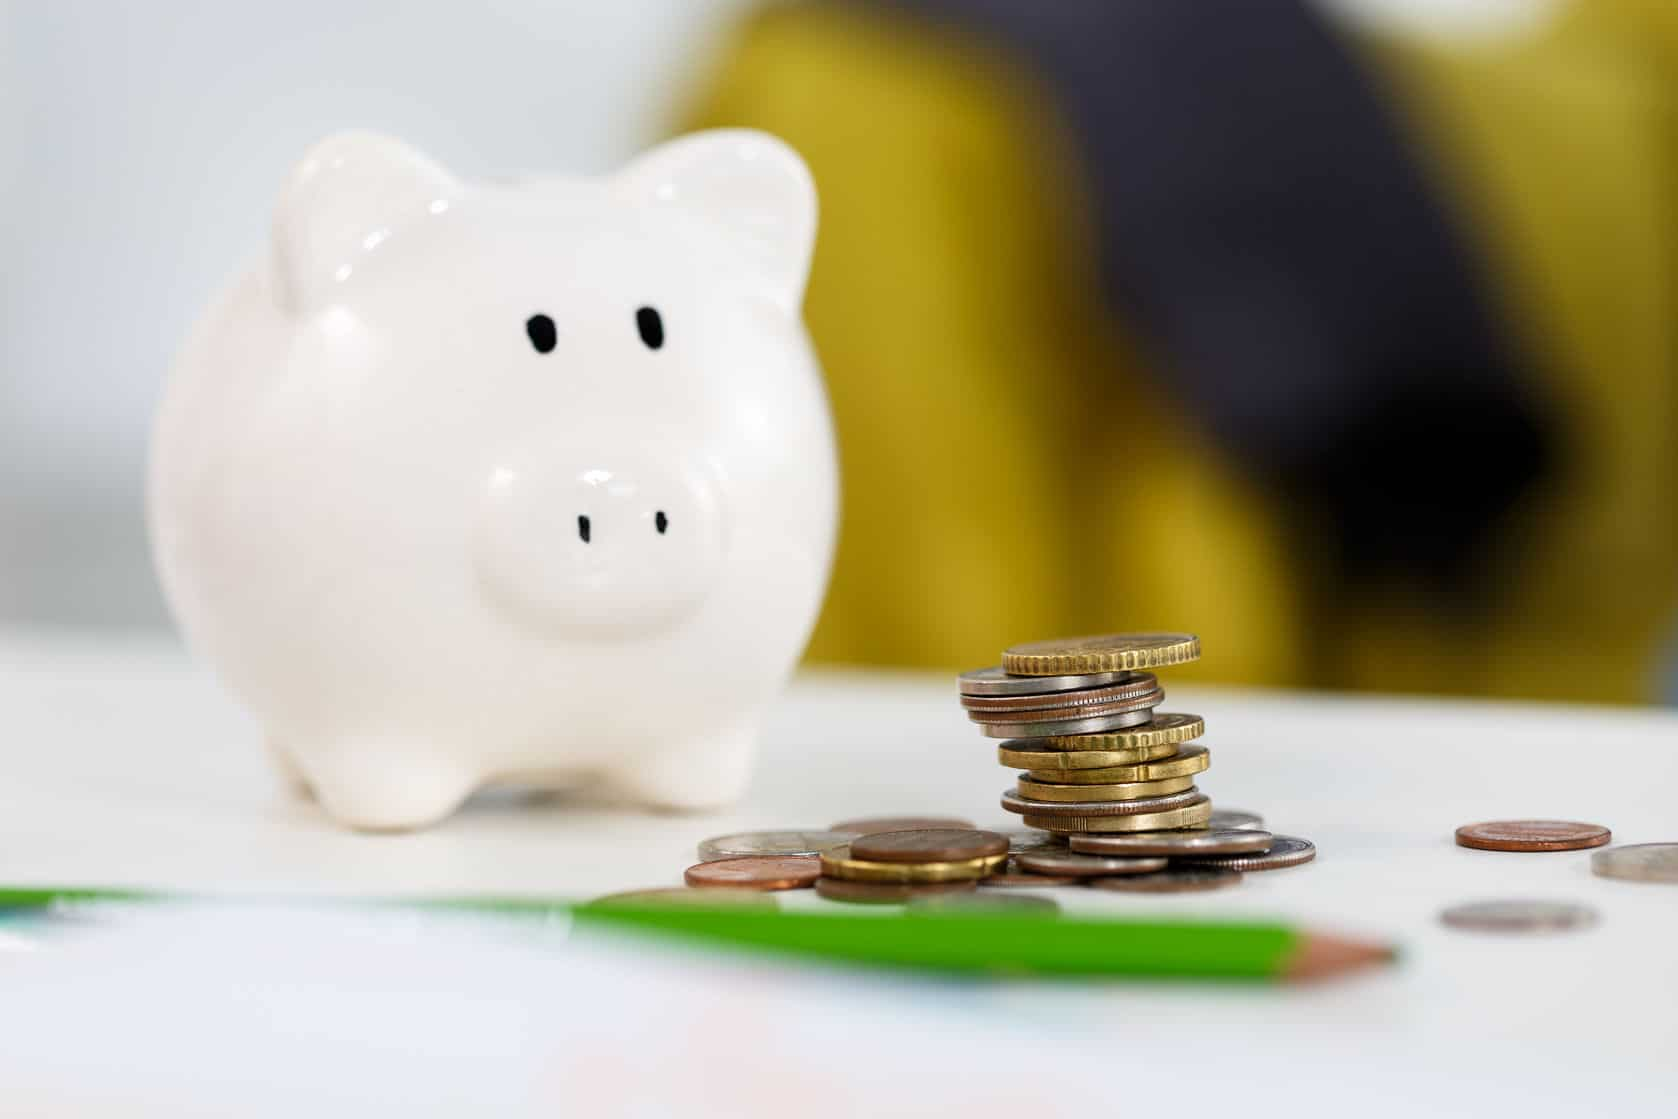 Saving change, budgeting, and delegating money helps your budget stay on track